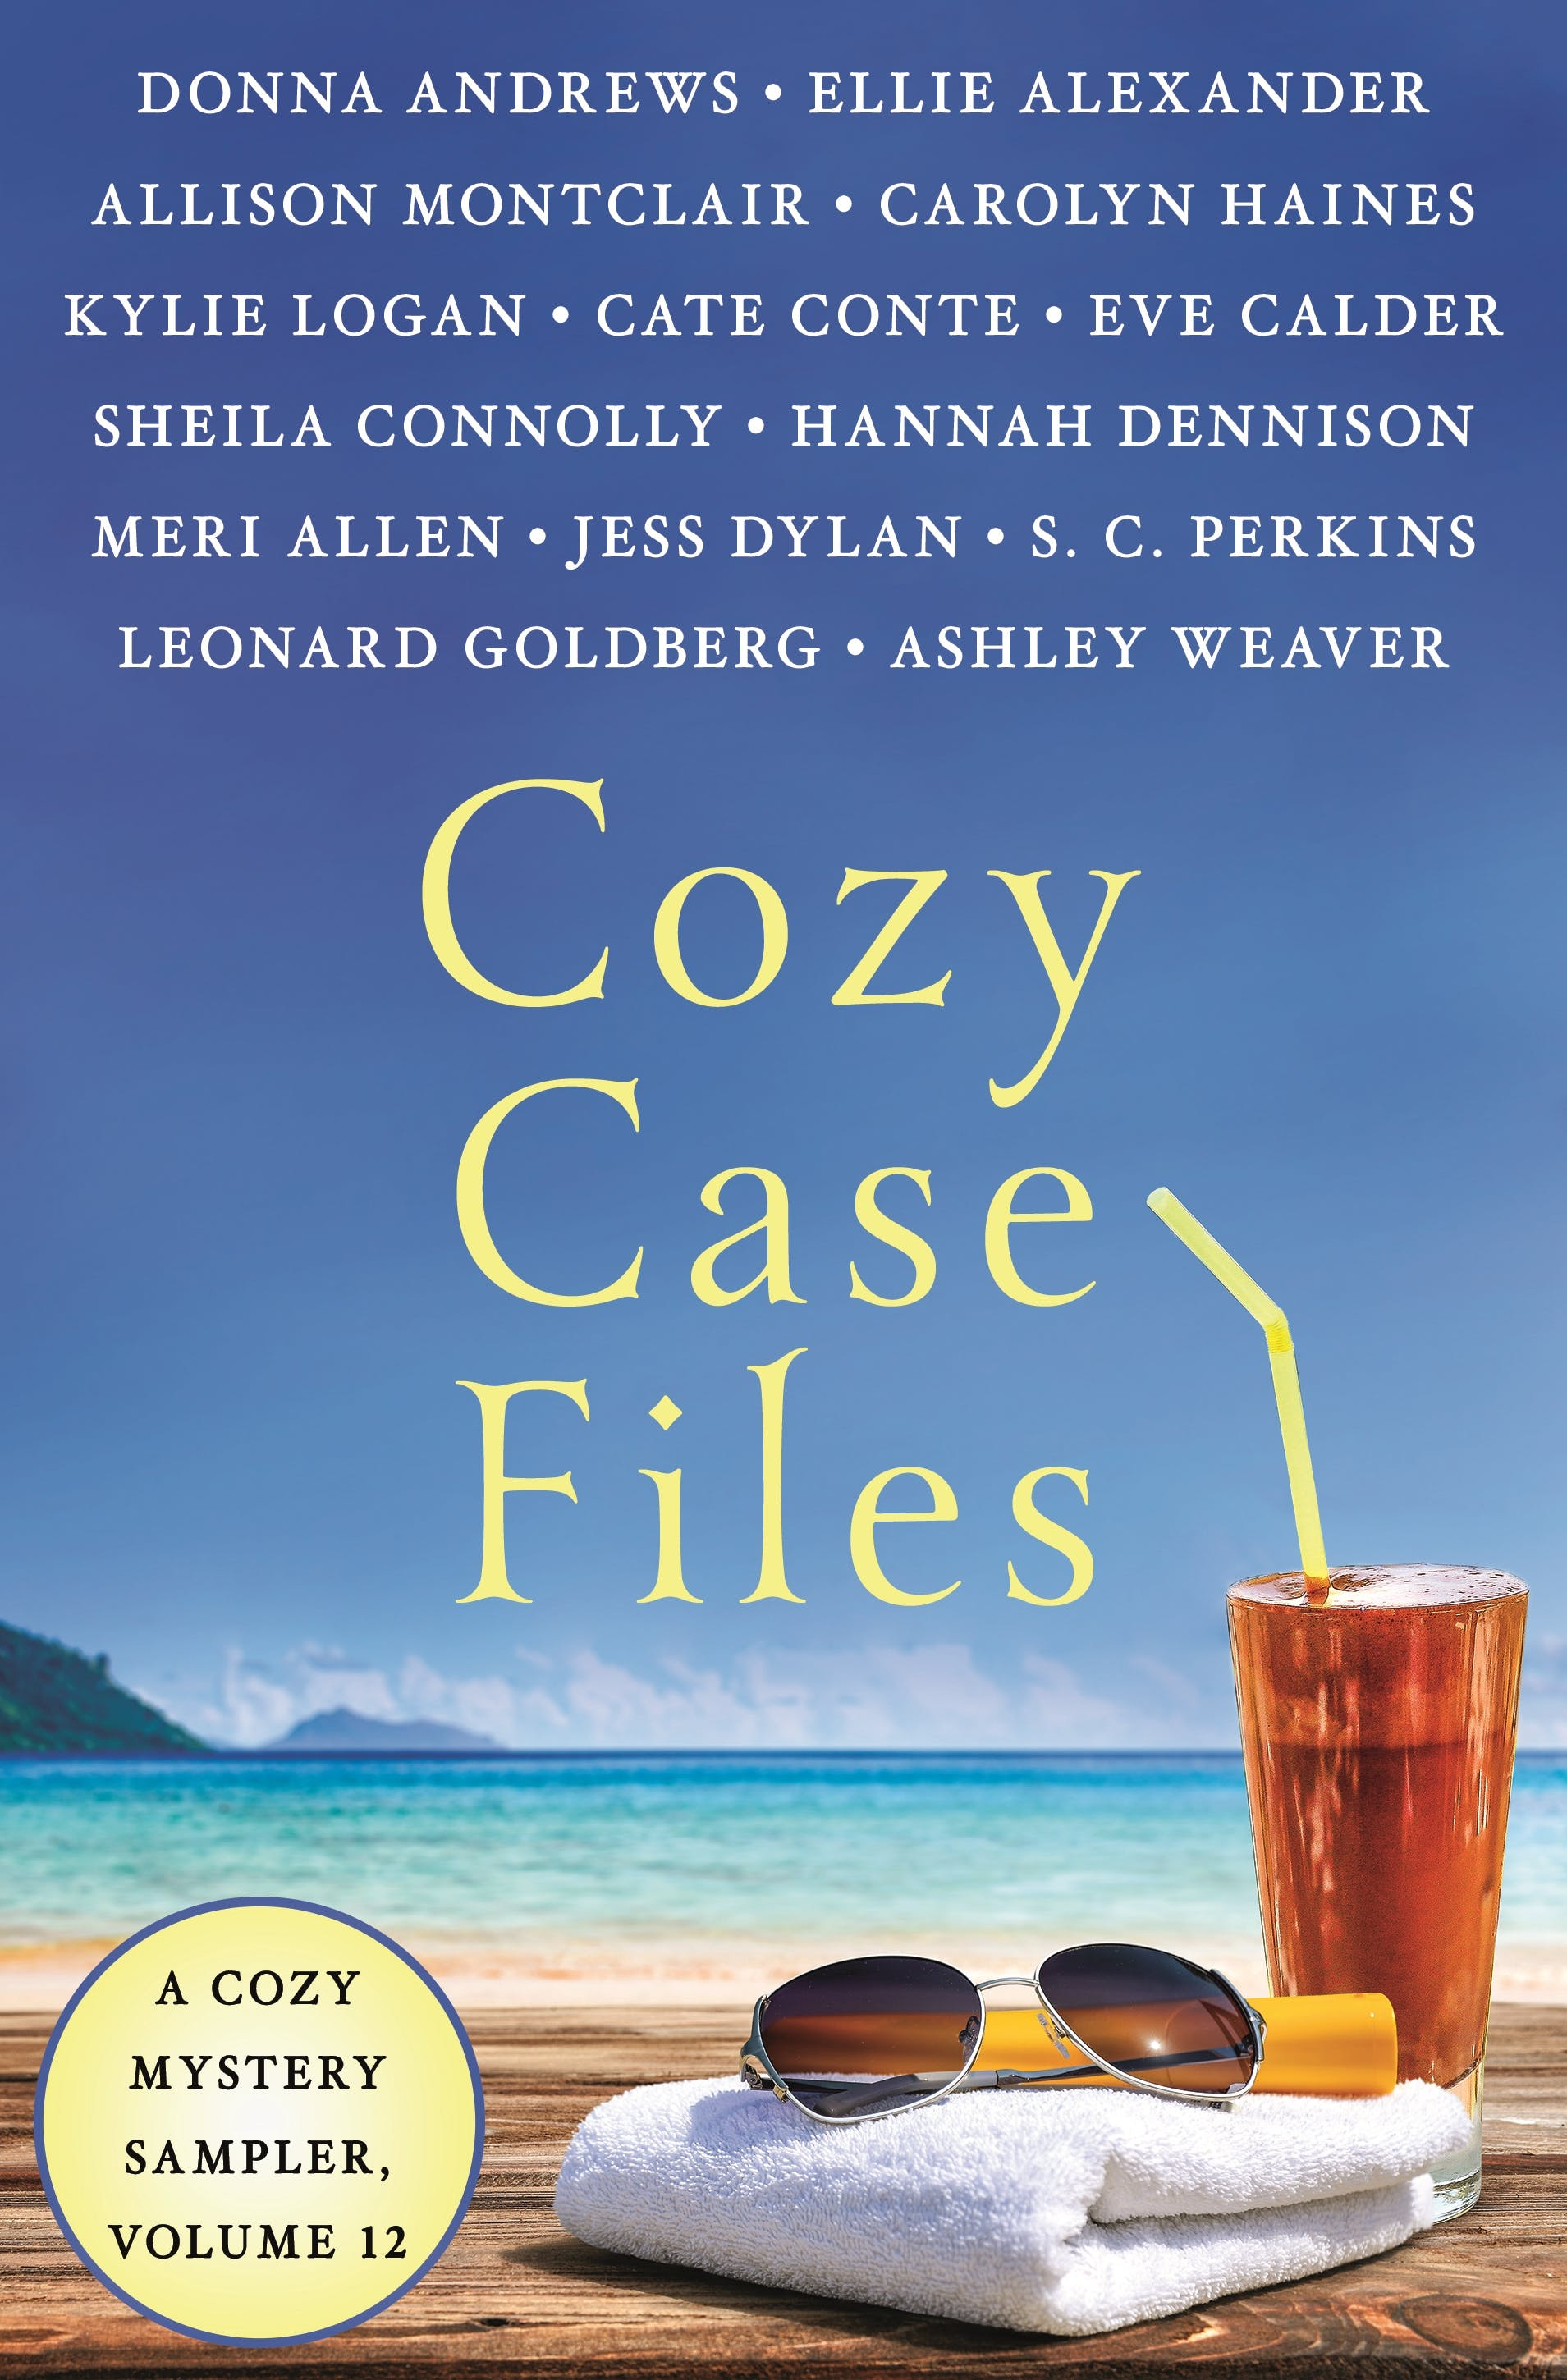 Image of Cozy Case Files, A Cozy Mystery Sampler, Volume 12